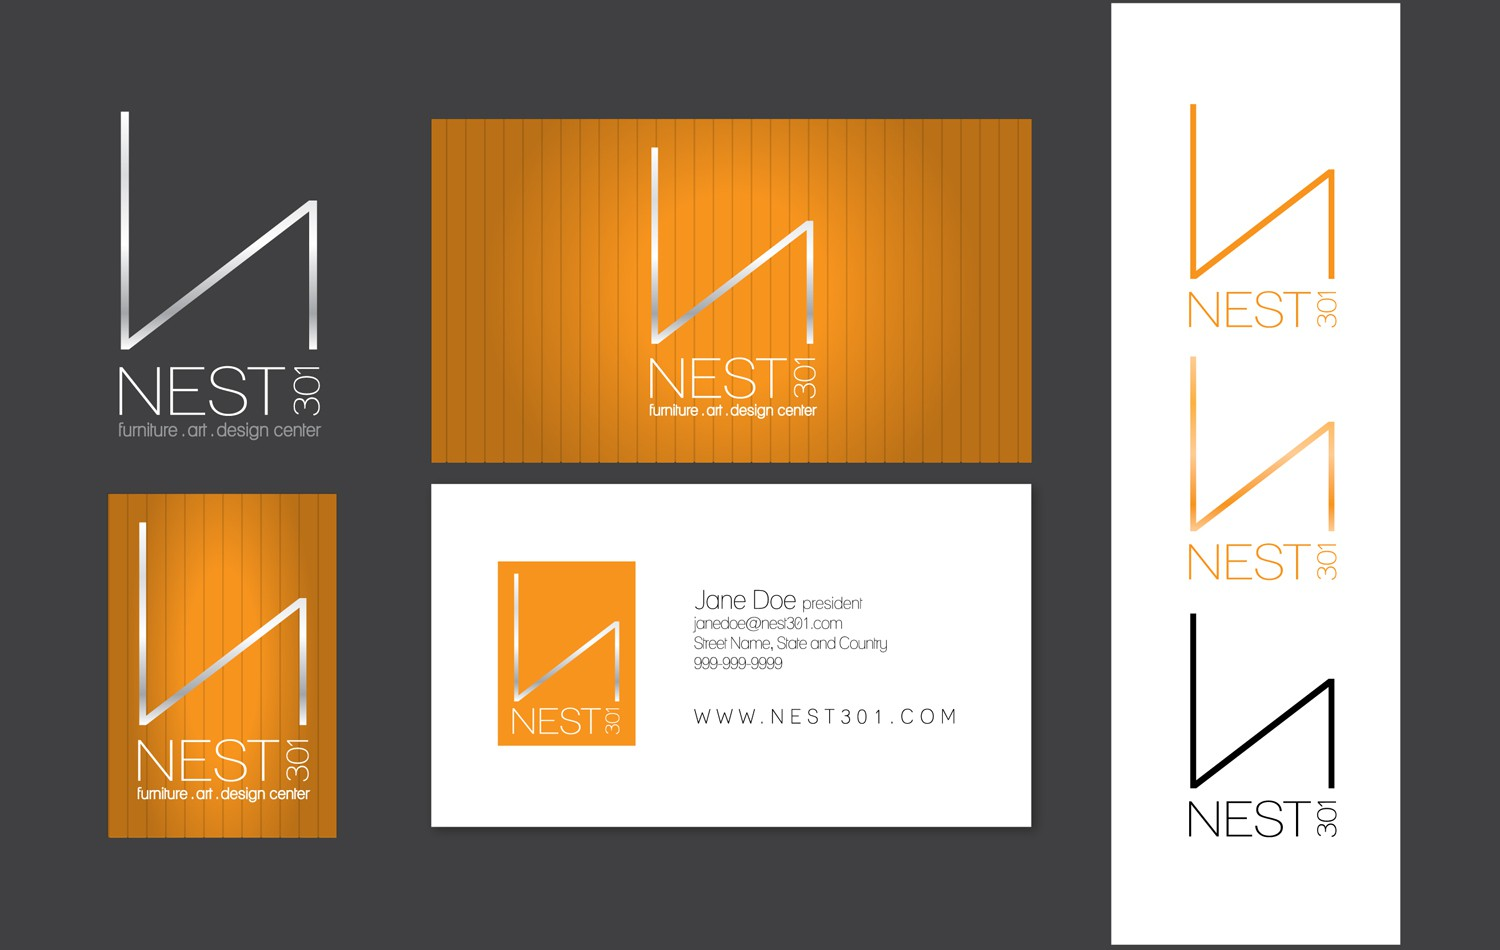 Help Nest 301 with a new logo and business card